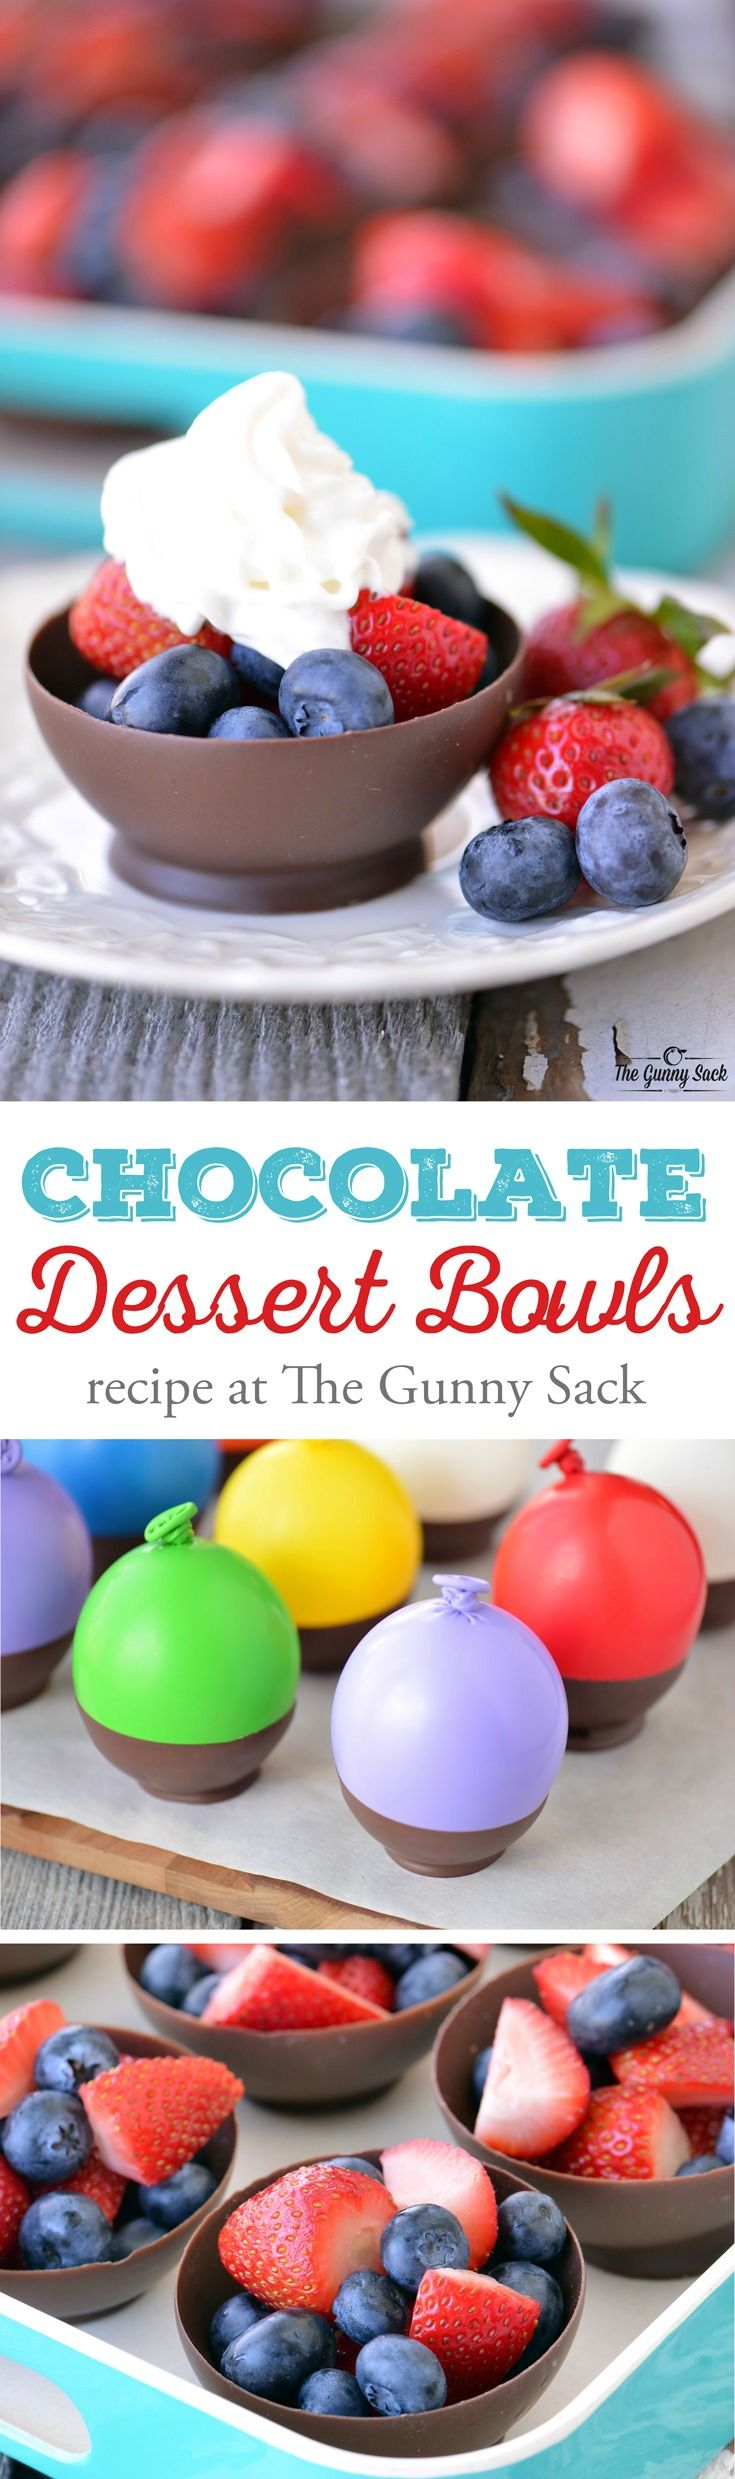 These Chocolate Dessert Bowls are made by dipping balloons in chocolate! The recipe is easy to follow and chocolate bowls can be filled with fresh fruit. Sponsored by Target.